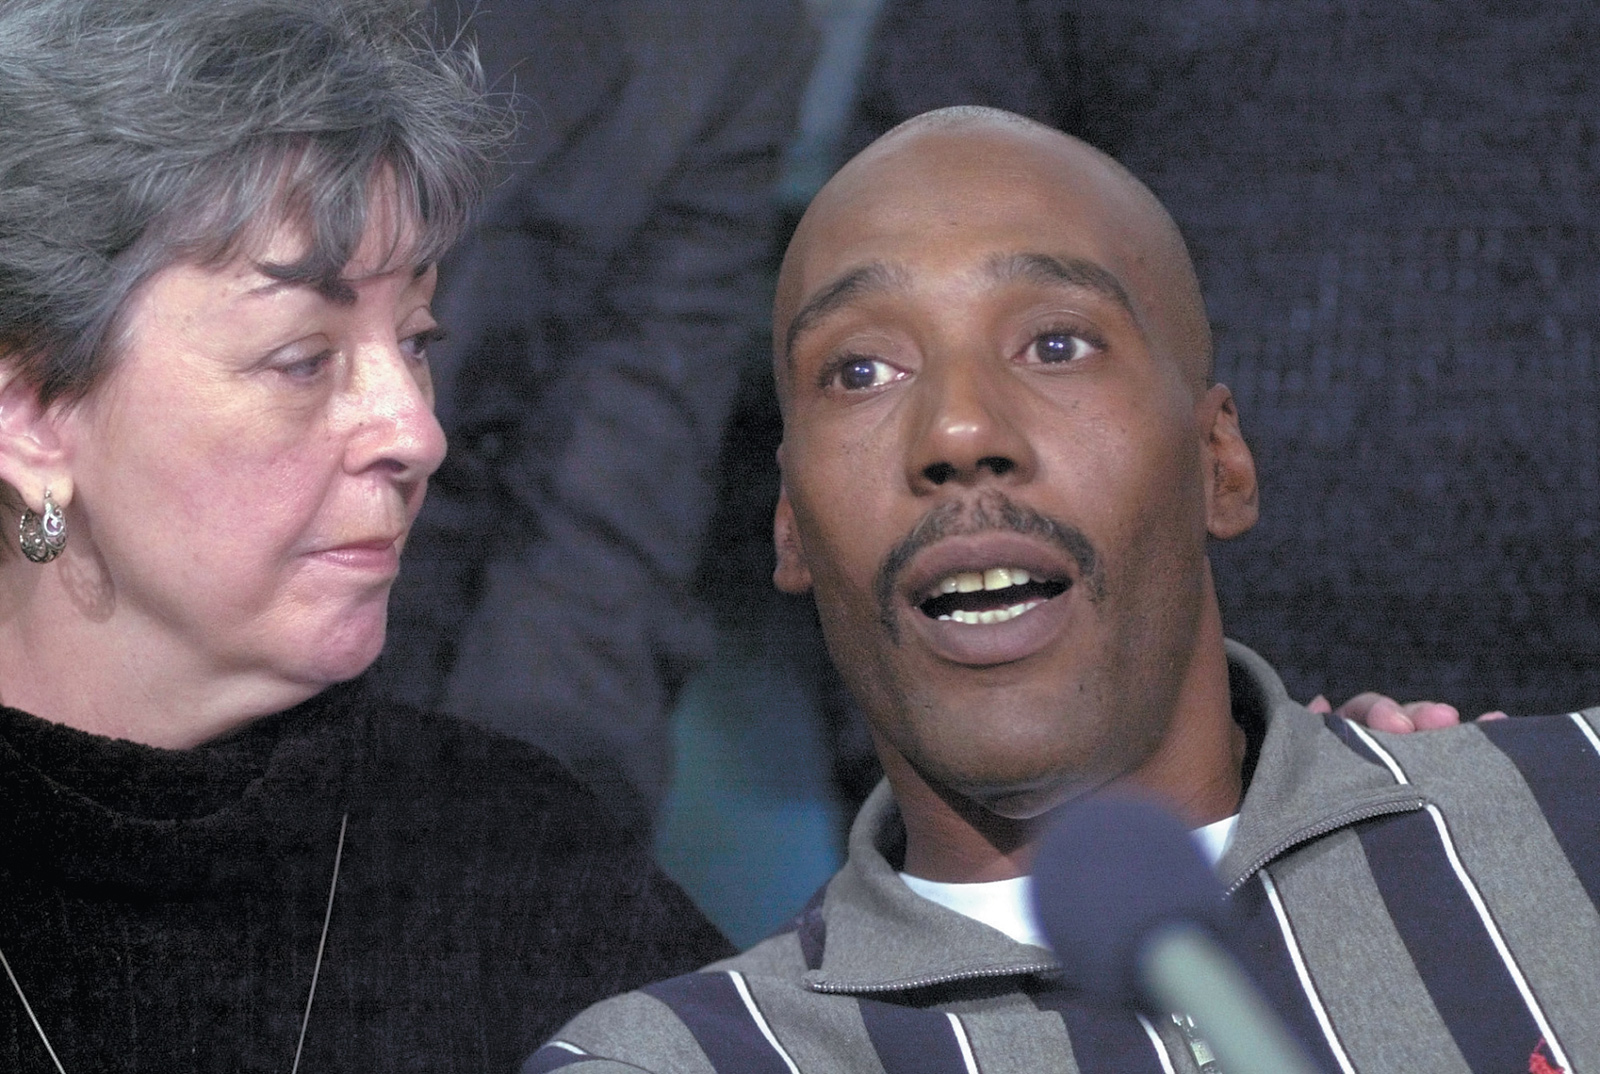 Earl Washington, who in 1984 was wrongfully convicted of rape and murder, with Marie Deans, a member of his legal team, at a press conference in Virginia Beach after he was freed from prison, February 2001. Washington spent more than seventeen years in prison—many of them on death row—and once came within nine days of execution. He was exonerated after DNA testing proved his innocence.